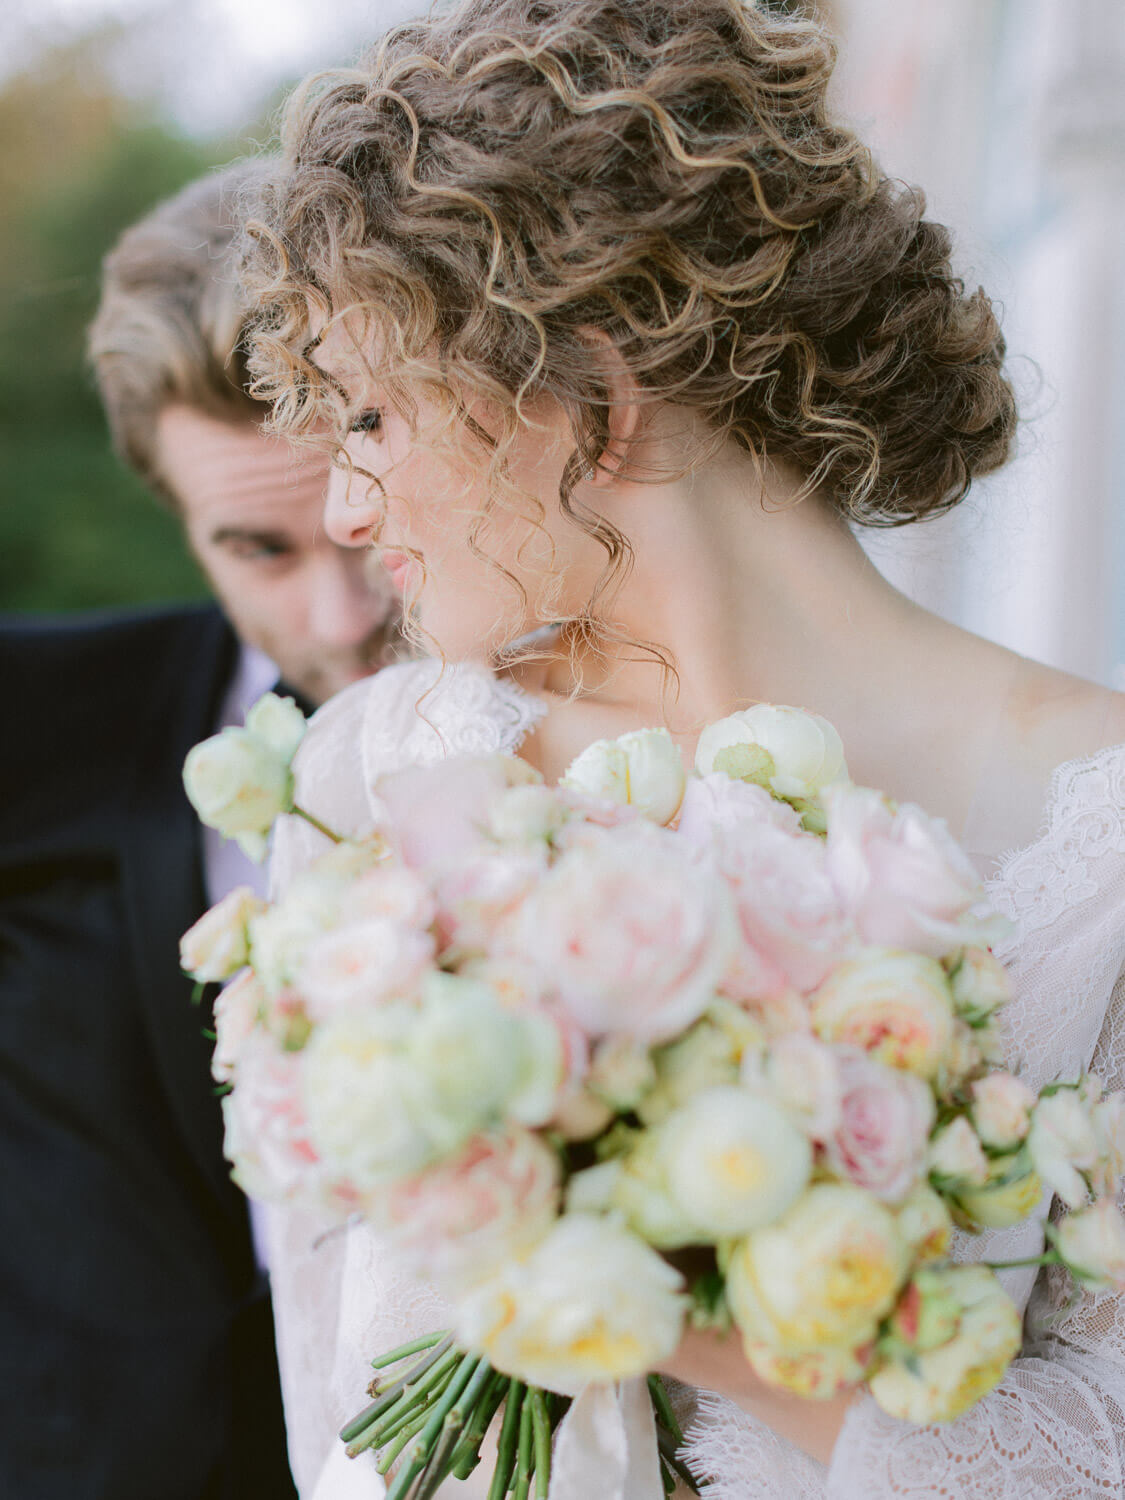 bridal bouquet out of focus with bride and groom in the background by Portugal Wedding Photographer